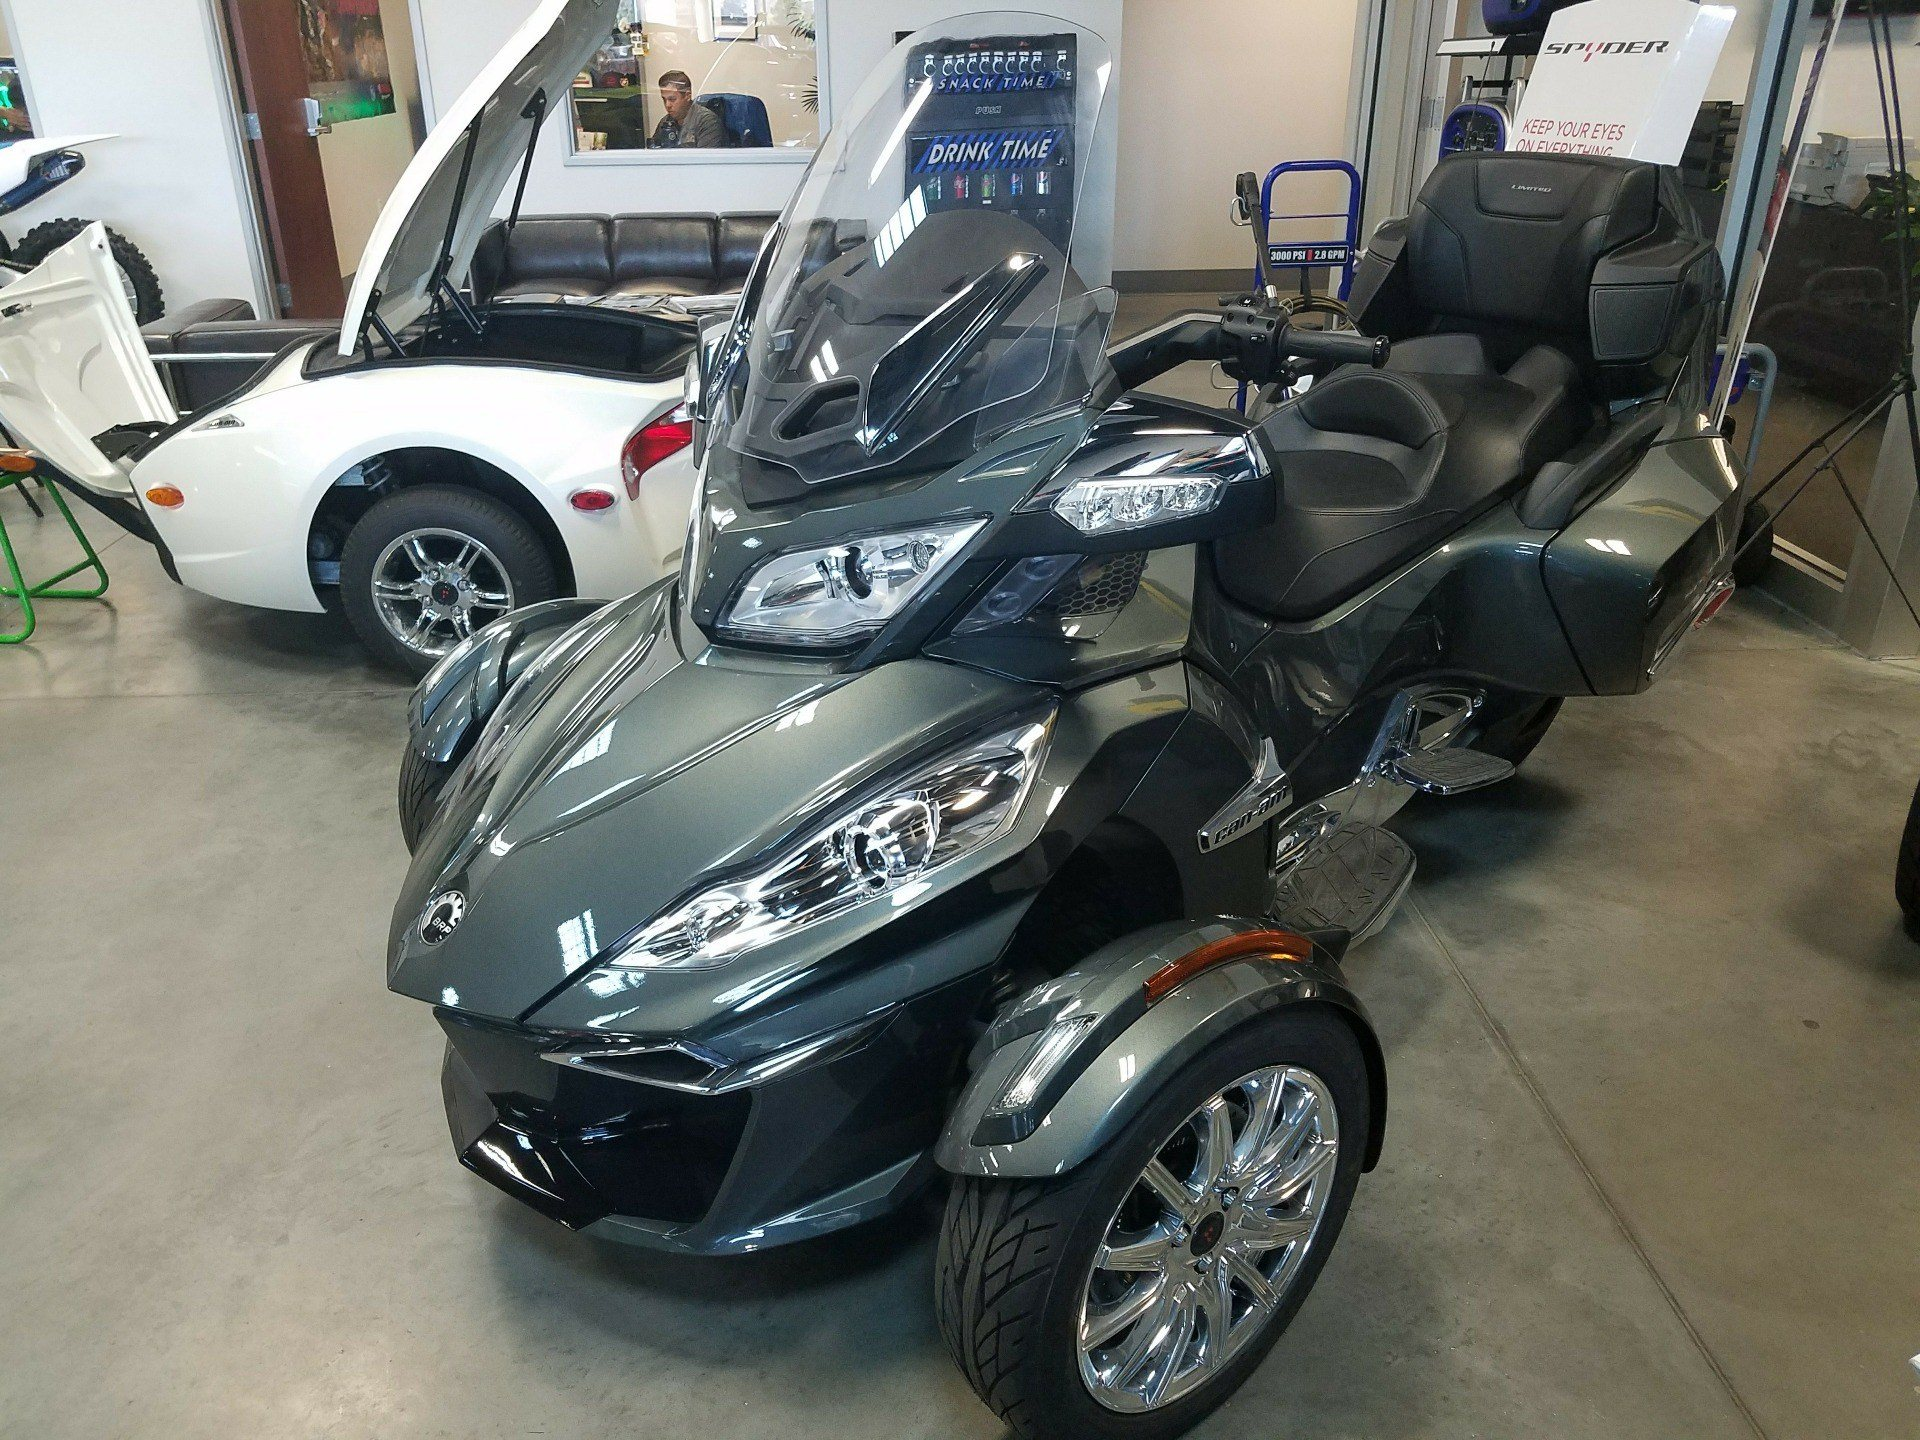 2017 Can Am Spyder Rt Limited In Las Vegas Nevada